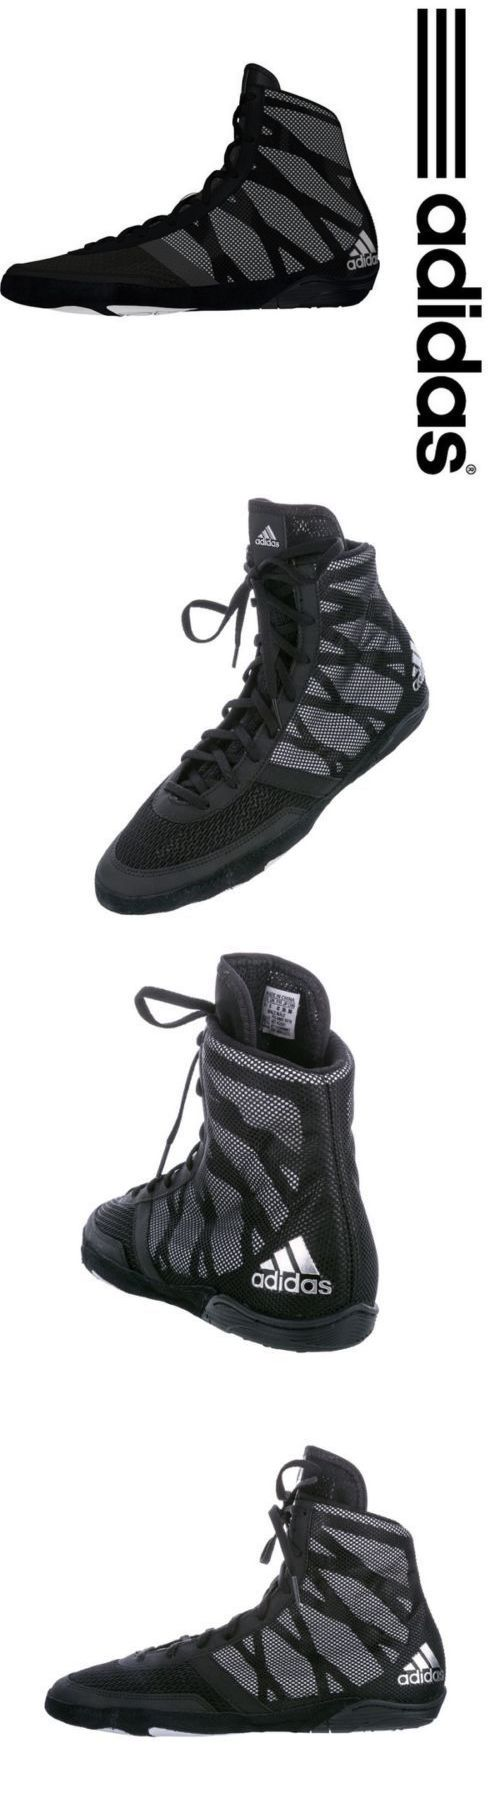 Accessories 36306: Adidas Wrestling Shoes (Boots) Ringerschuhe Pretereo Iii Chaussures De Lutte BUY IT NOW ONLY: $59.95